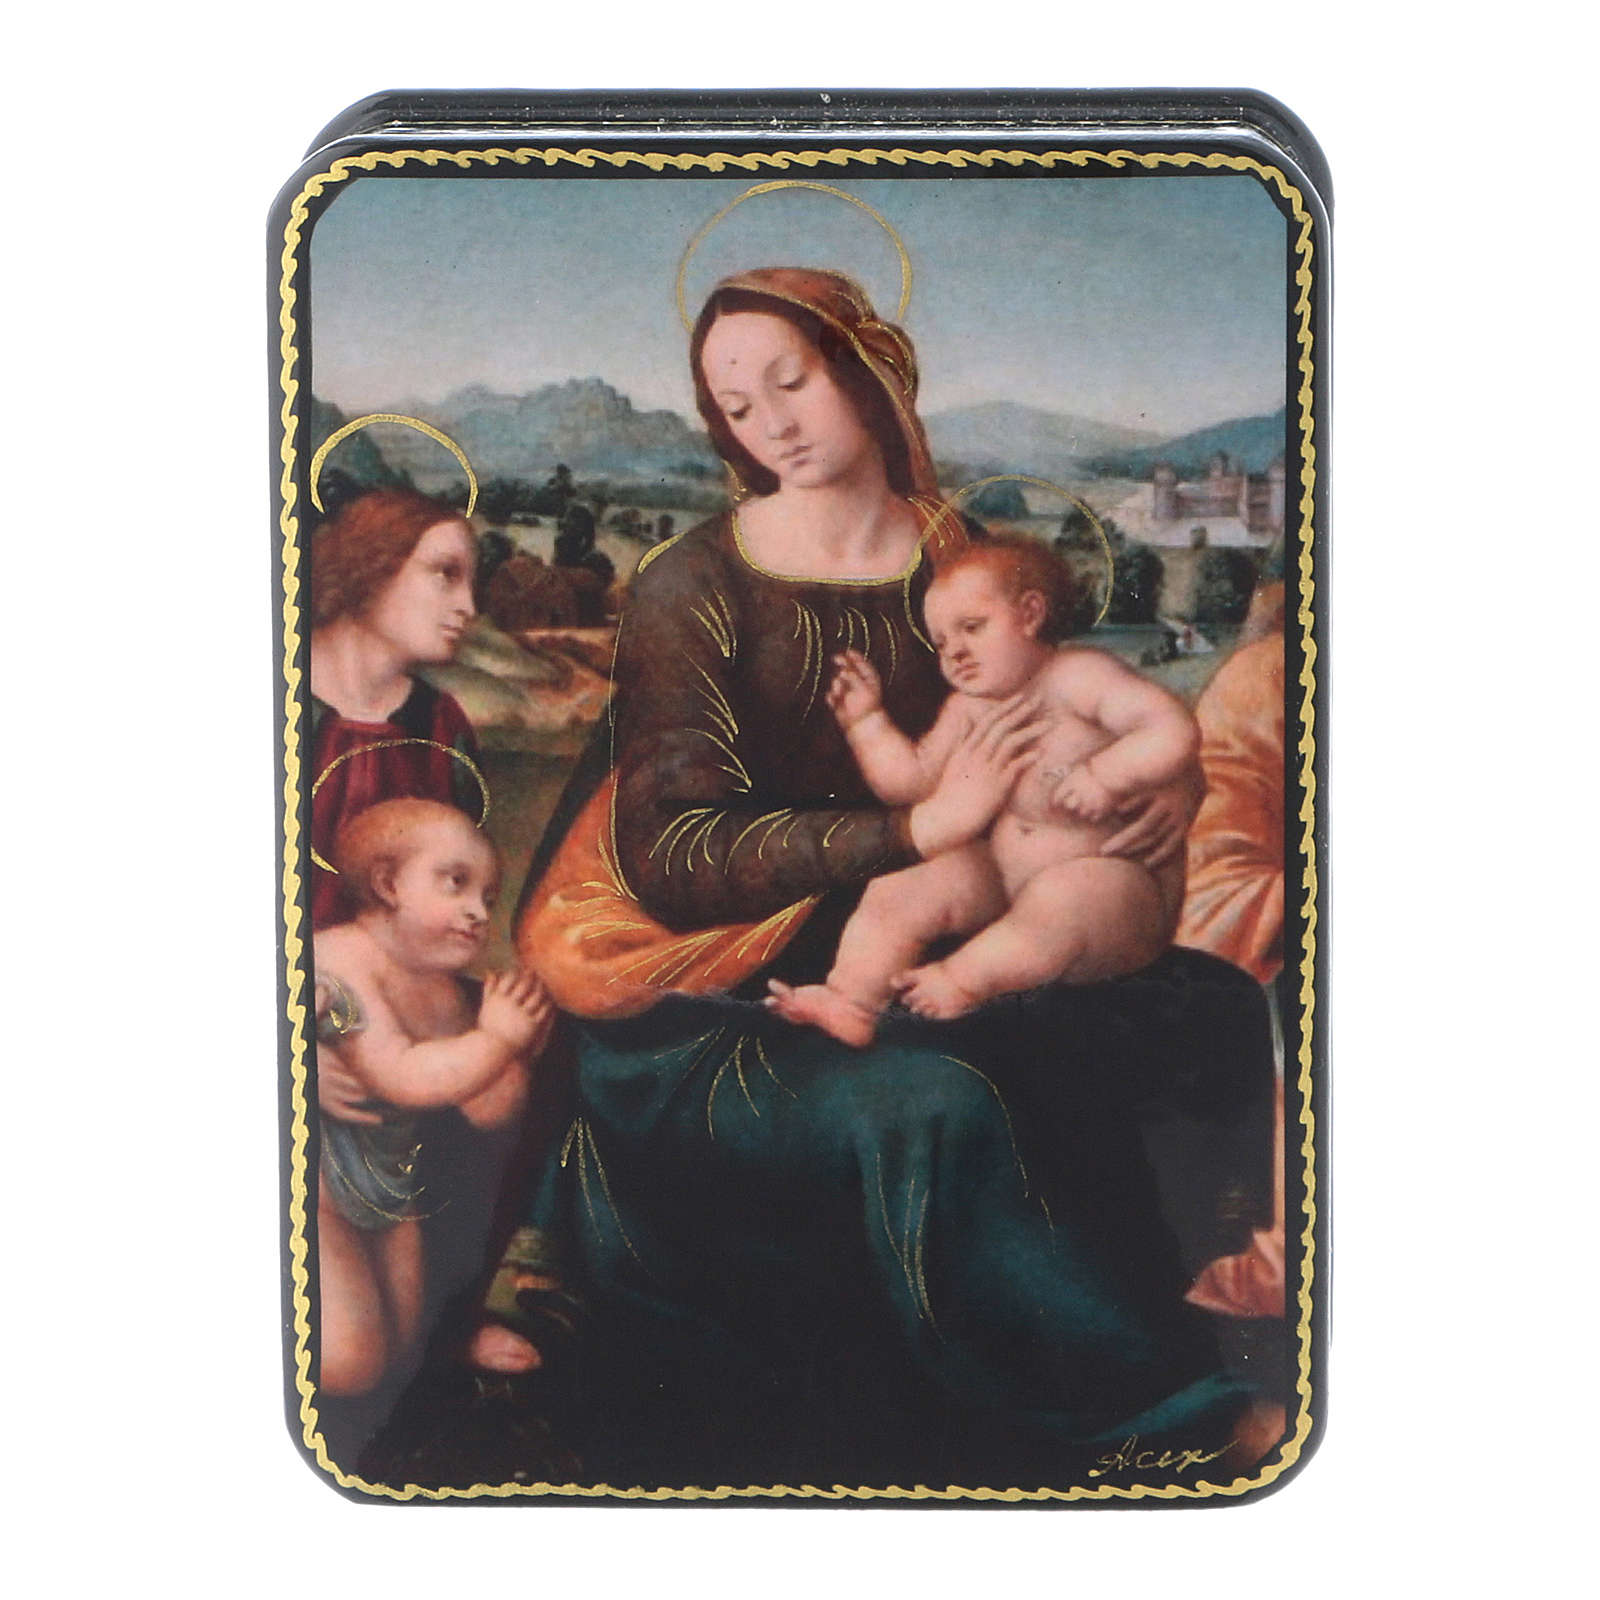 Russian papier machè and lacquer box The Adoration of Baby Jesus Fedoskino style 11x8 4